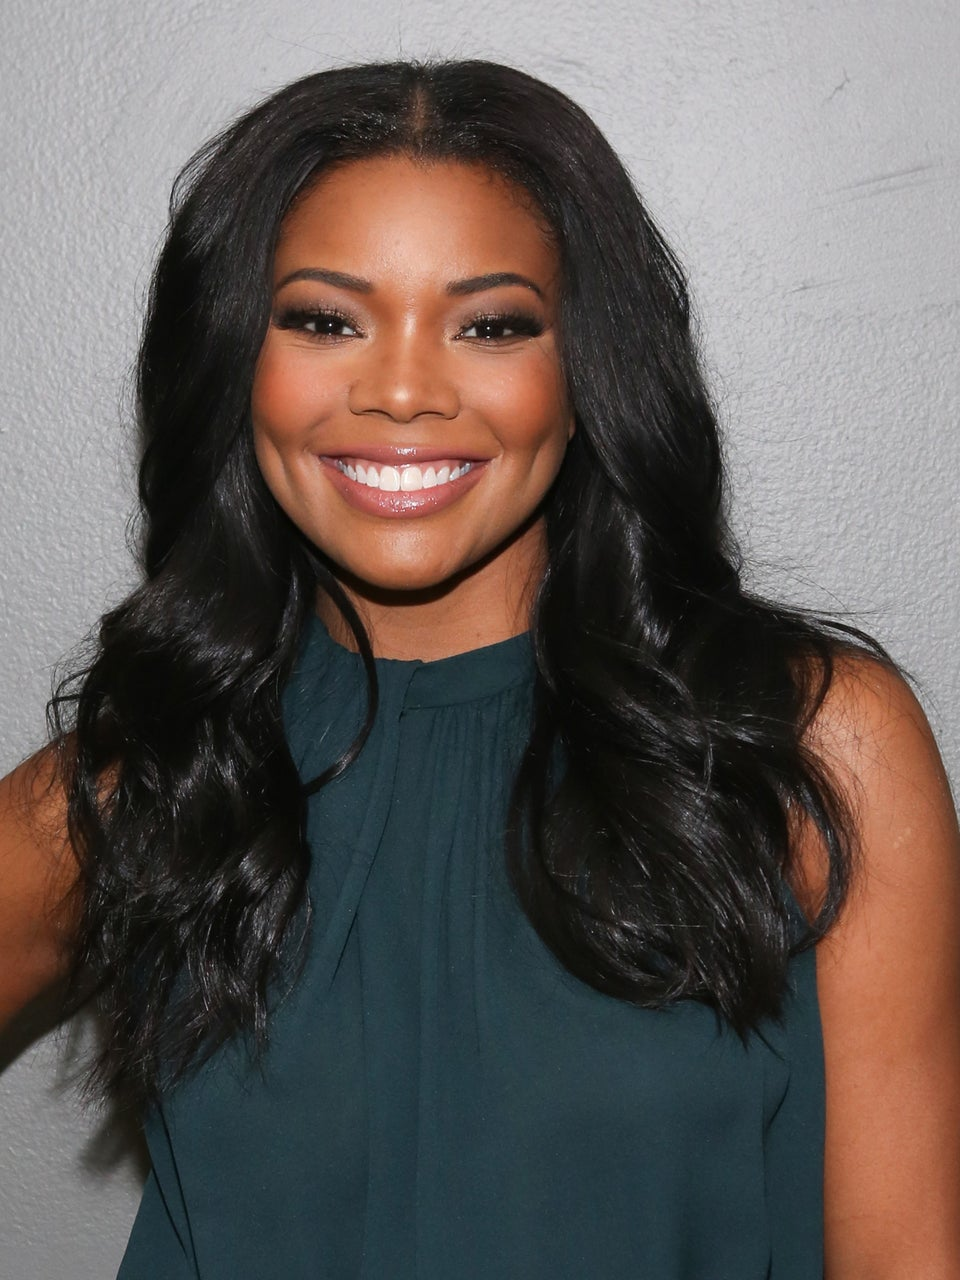 Gabrielle Union on Being a Stepmom: 'It's Been a Journey'